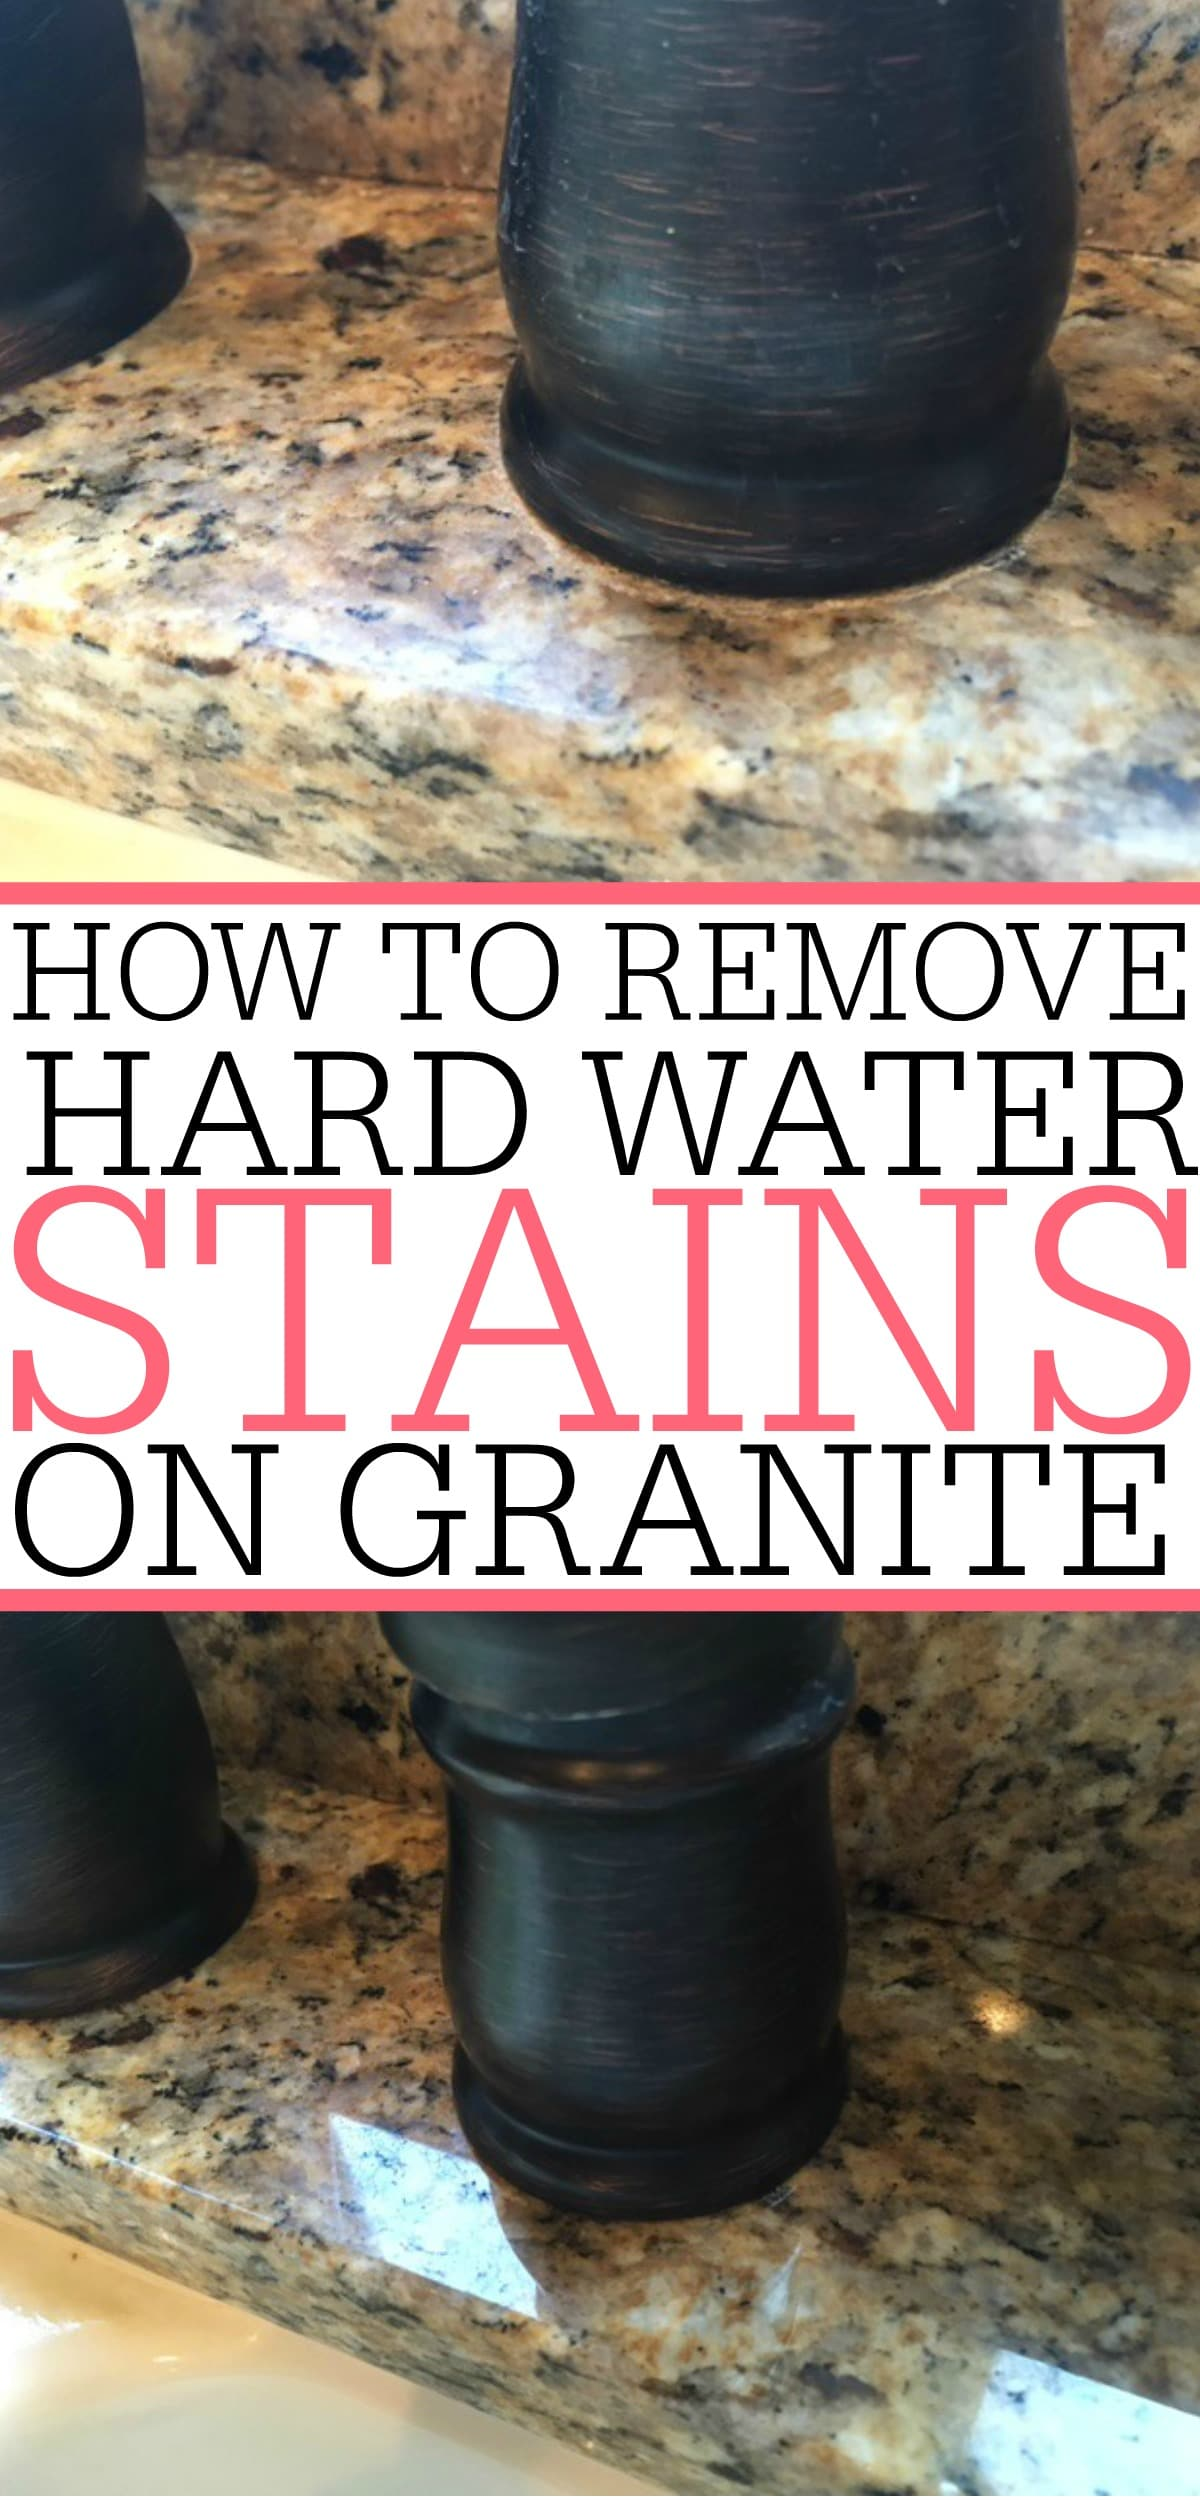 Natural Way To Clean Granite Countertops How To Get Hard Water Stains Off Granite Mycoffeepot Org